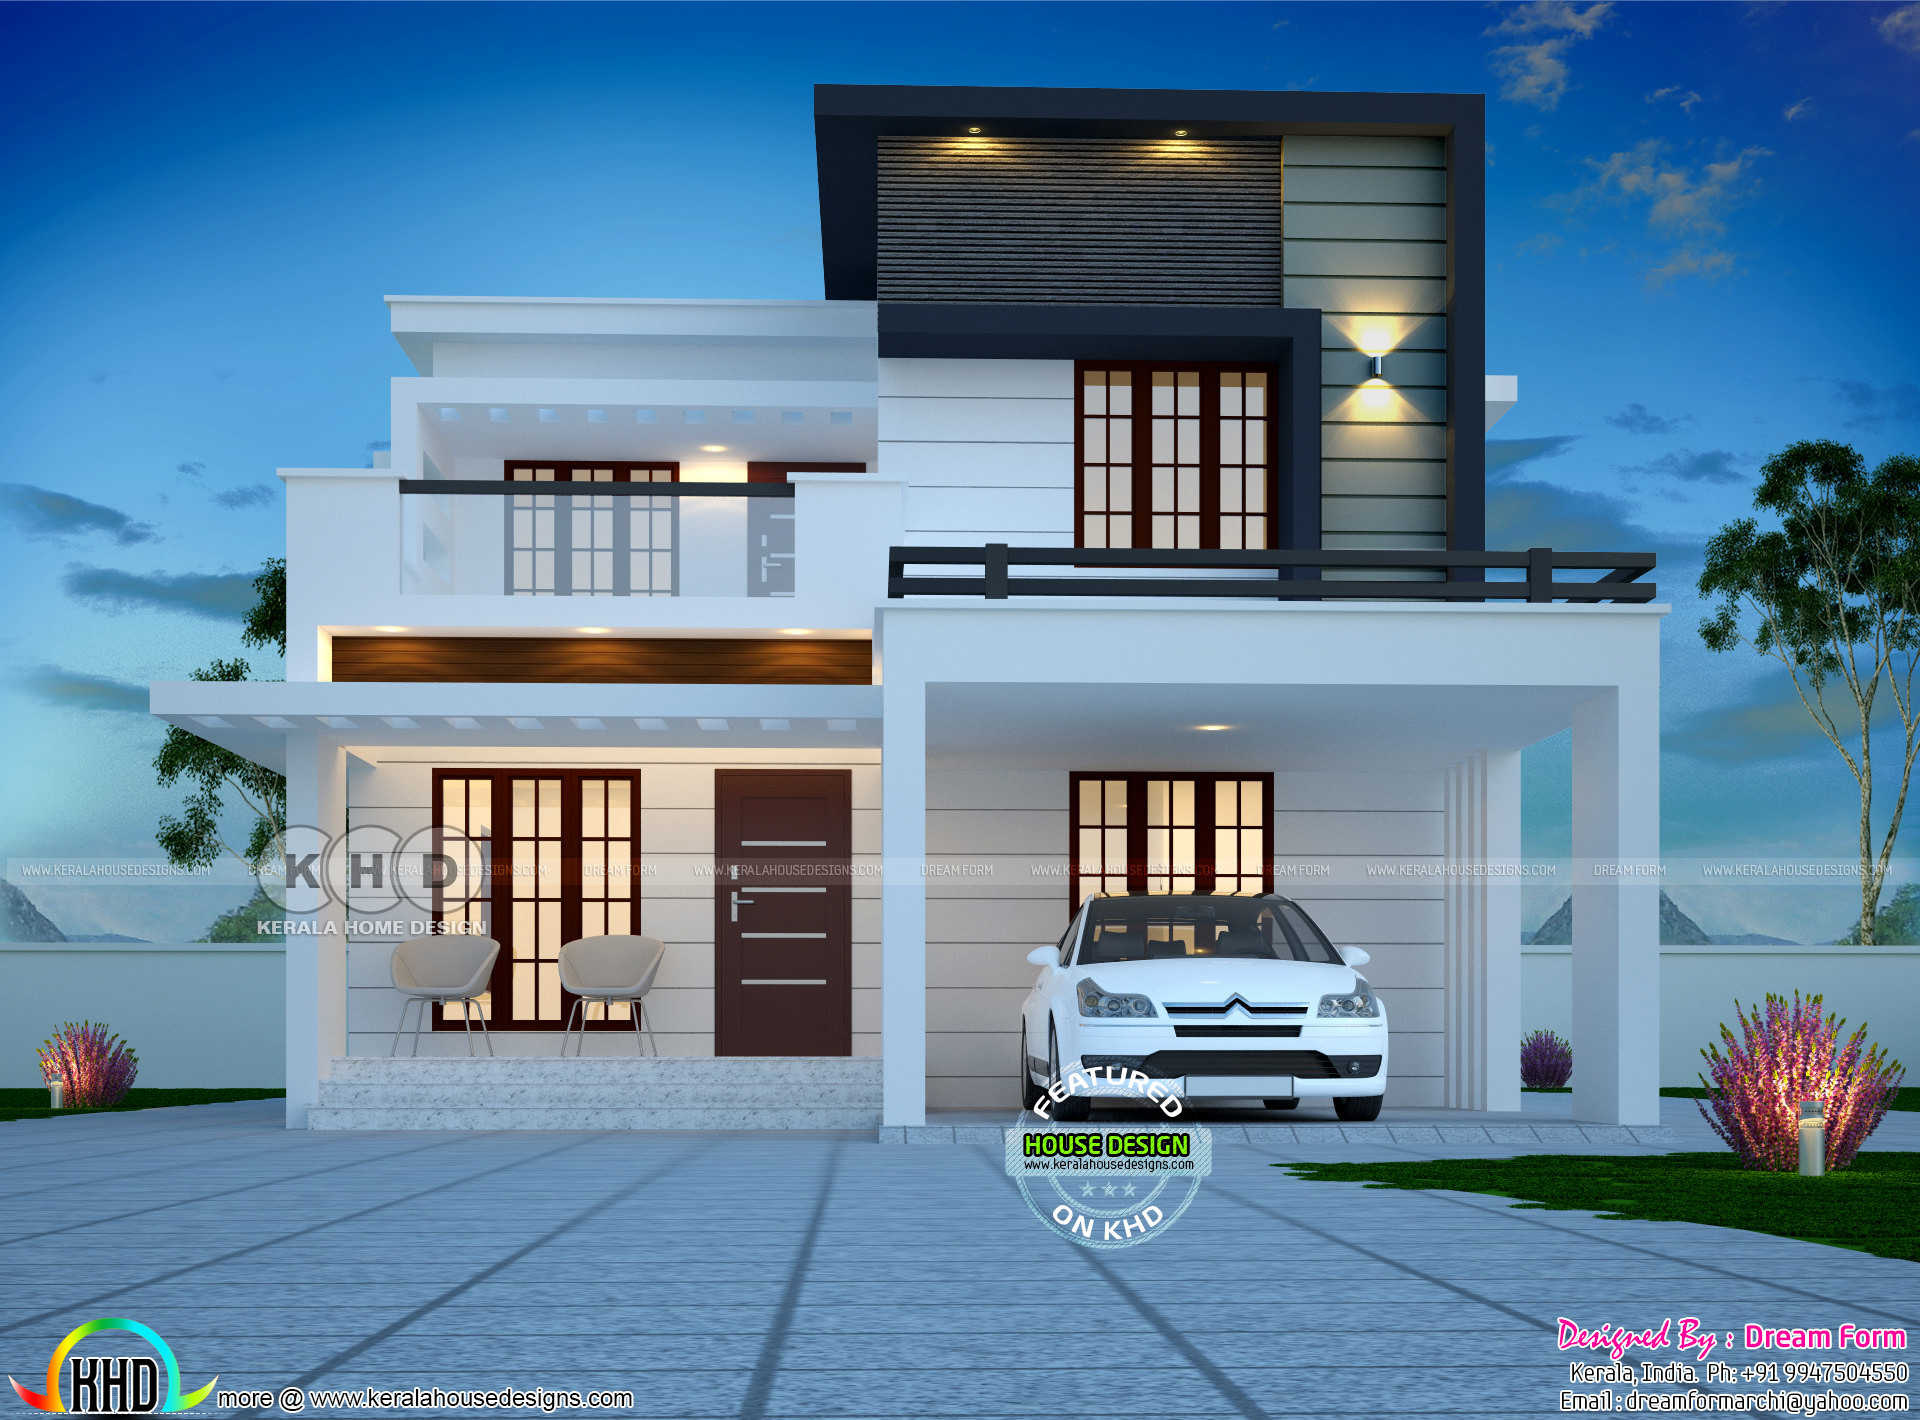 1580 sq-ft 3 bedroom modern home plan architecture | Kerala ... on abstract home plans, classical home plans, retro home plans, industrial home plans, comfortable home plans, alternative home plans, classic home plans, fun home plans, stylish home plans, office home plans, contemporary country home plans, urban home plans, modernistic home plans, antique home plans, spacious home plans, arts and crafts home plans, minimalist home plans, rock home plans, mid-century modern home plans, functional home plans,